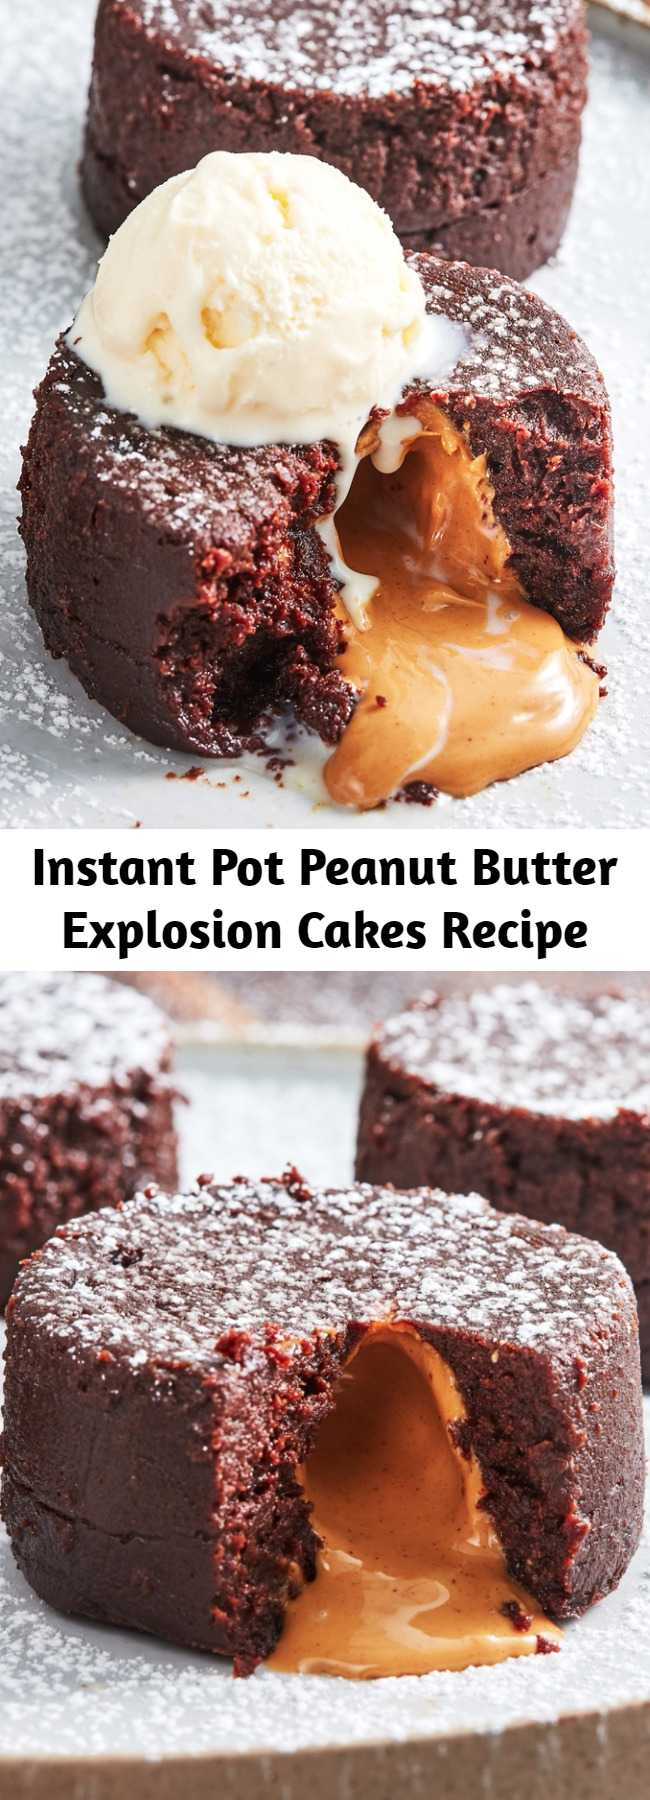 Instant Pot Peanut Butter Explosion Cakes Recipe - The Instant Pot makes the best molten cakes, hands-down. It gently cooks them to pure decadence. The cake is so rich with a perfectly creamy center that's to die for. We're obsessed with this cake, and soon you will be, too.